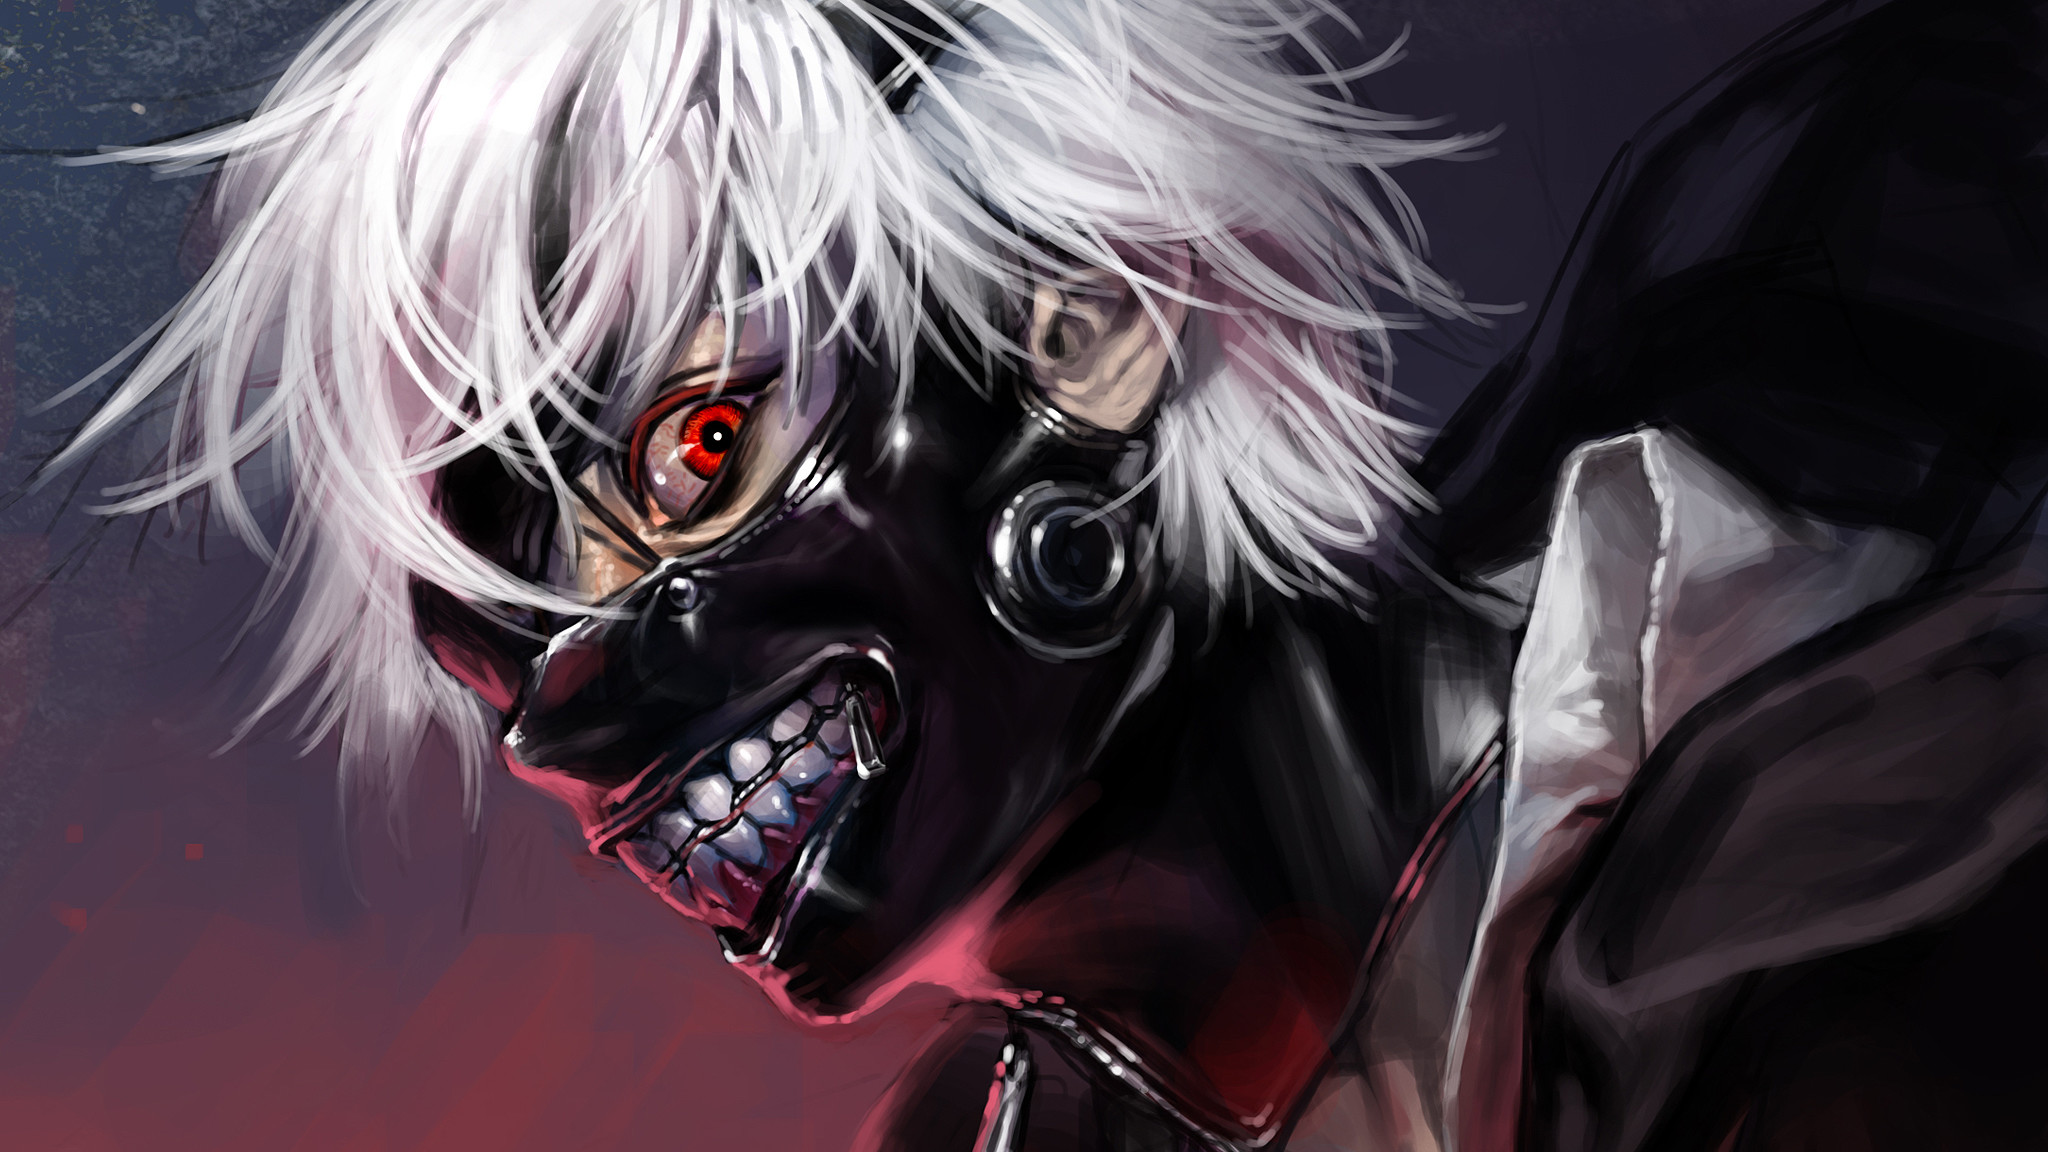 Res: 2048x1152, HD Wallpaper | Hintergrund ID:596820.  Anime Tokyo Ghoul